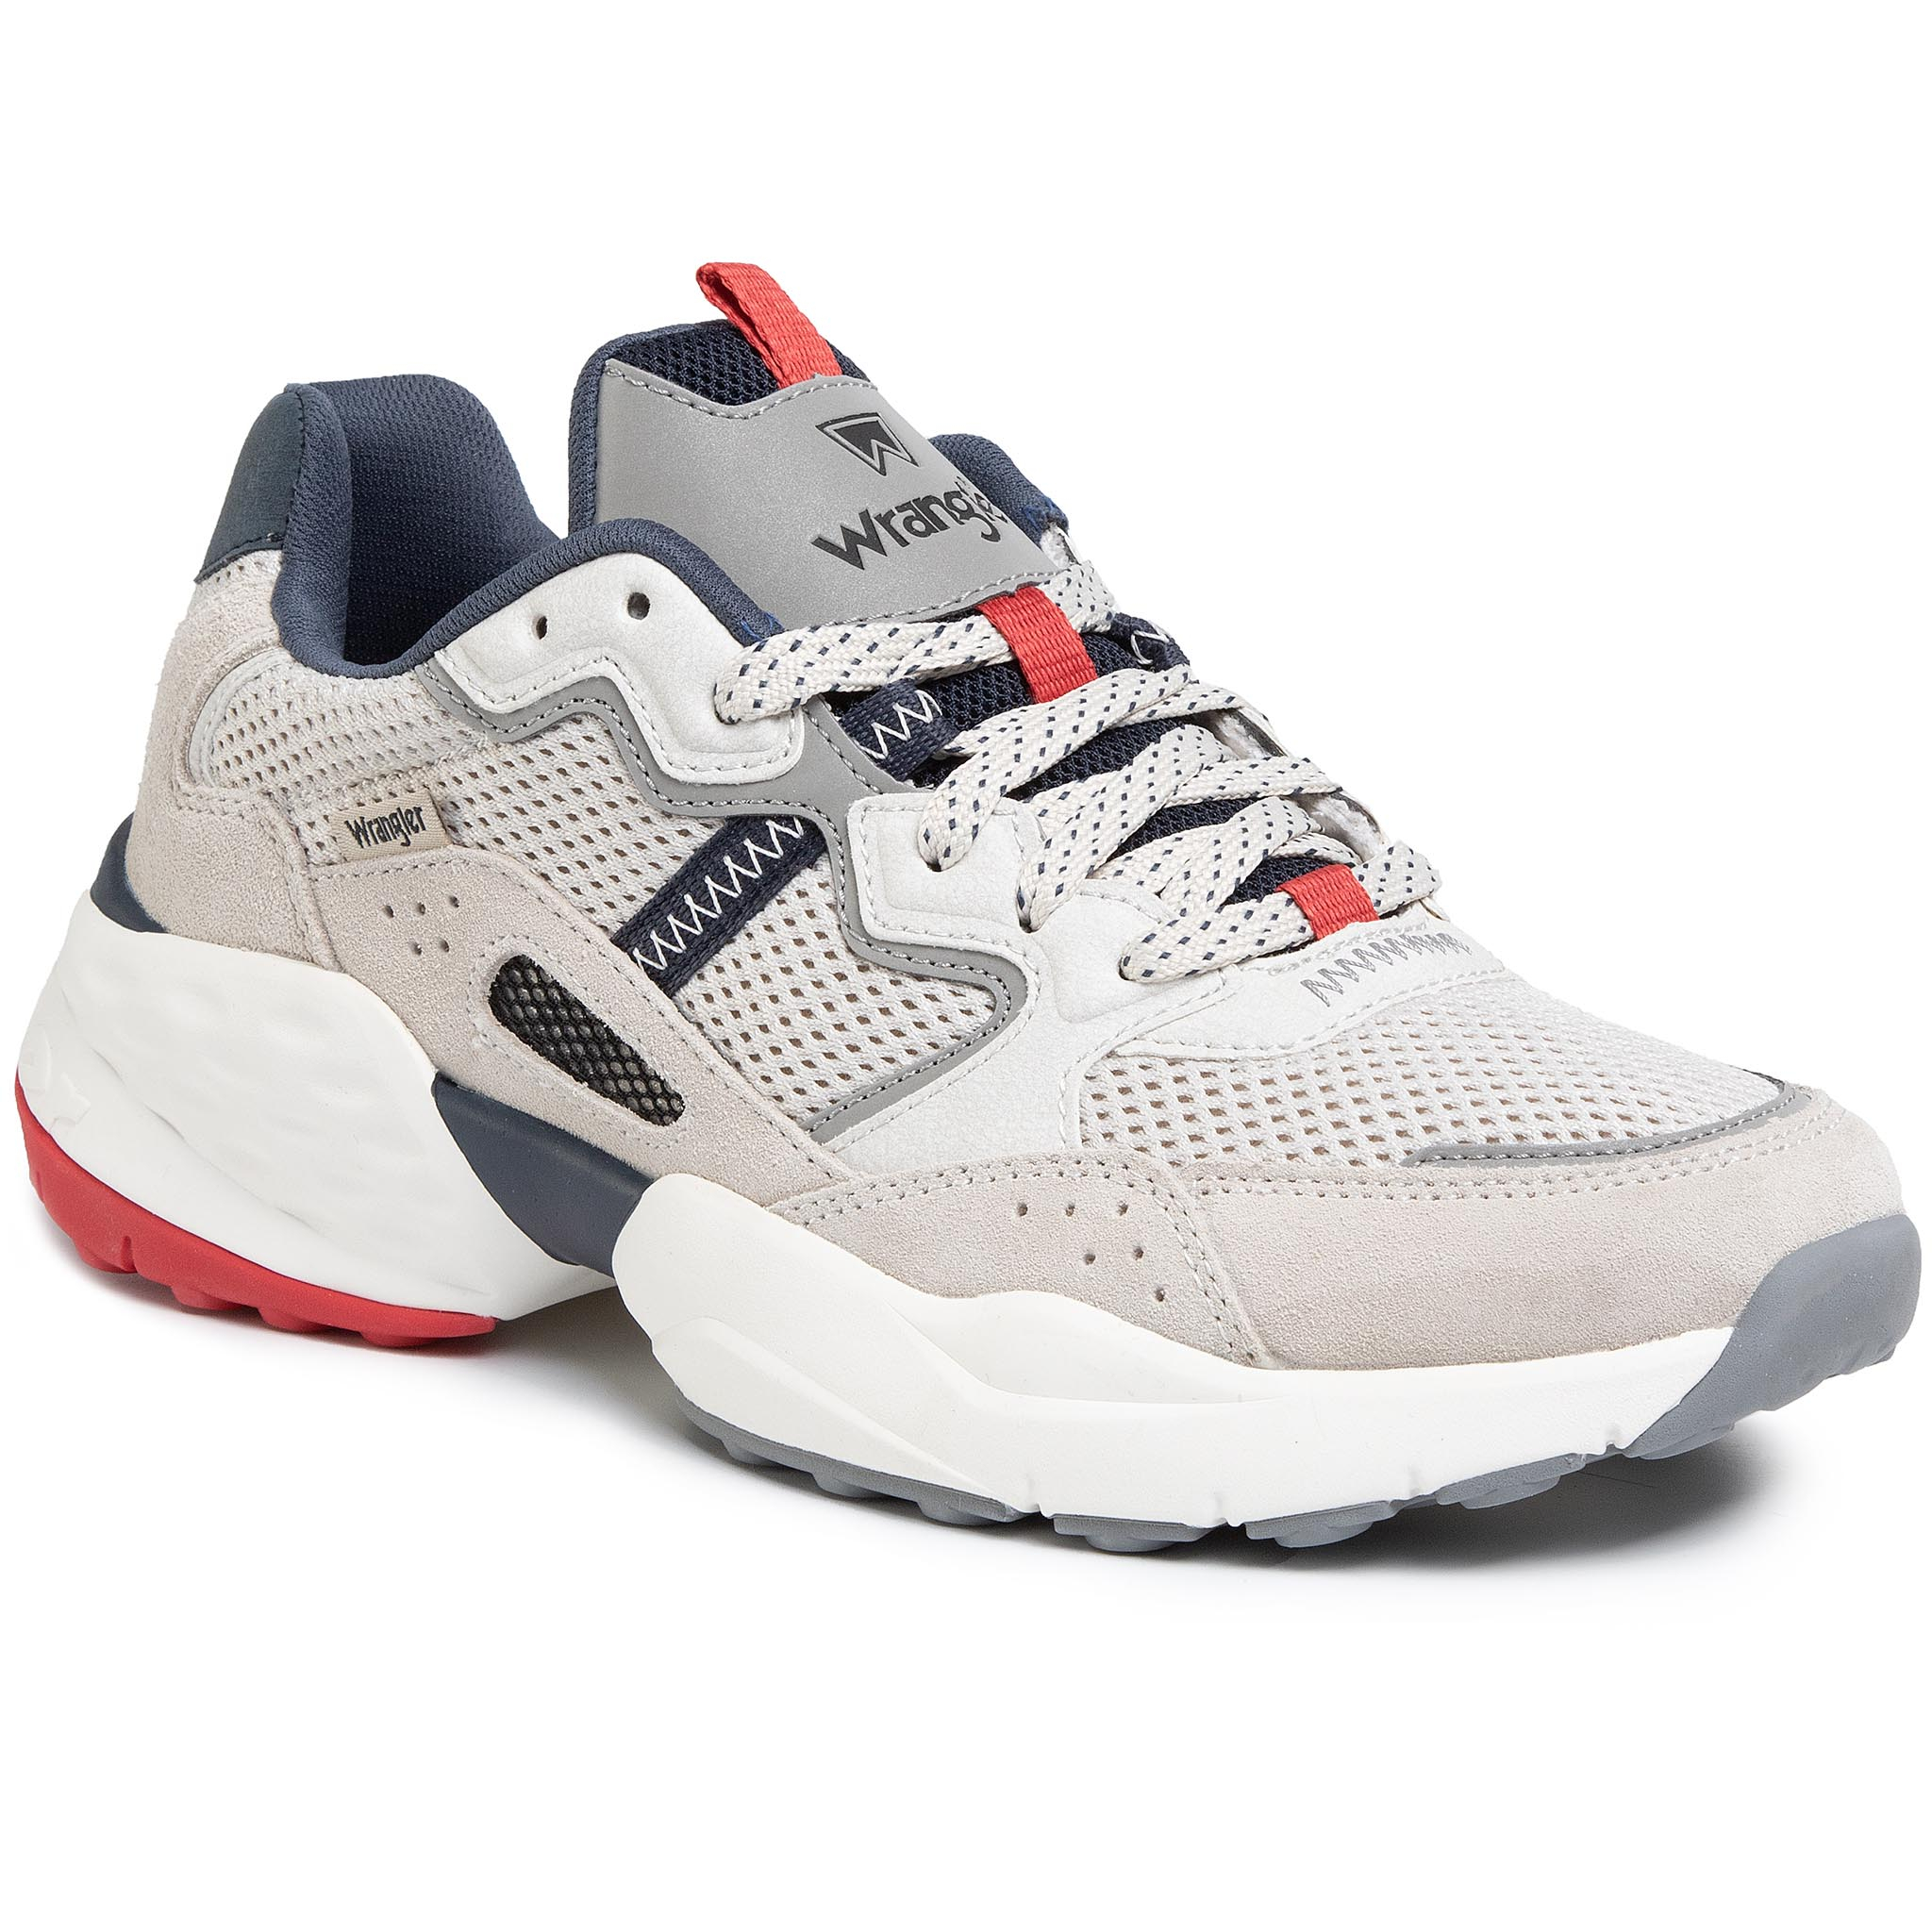 Sneakers Wrangler - Iconic 90 Sm Wm01101a White/Navy/Red 652 imagine